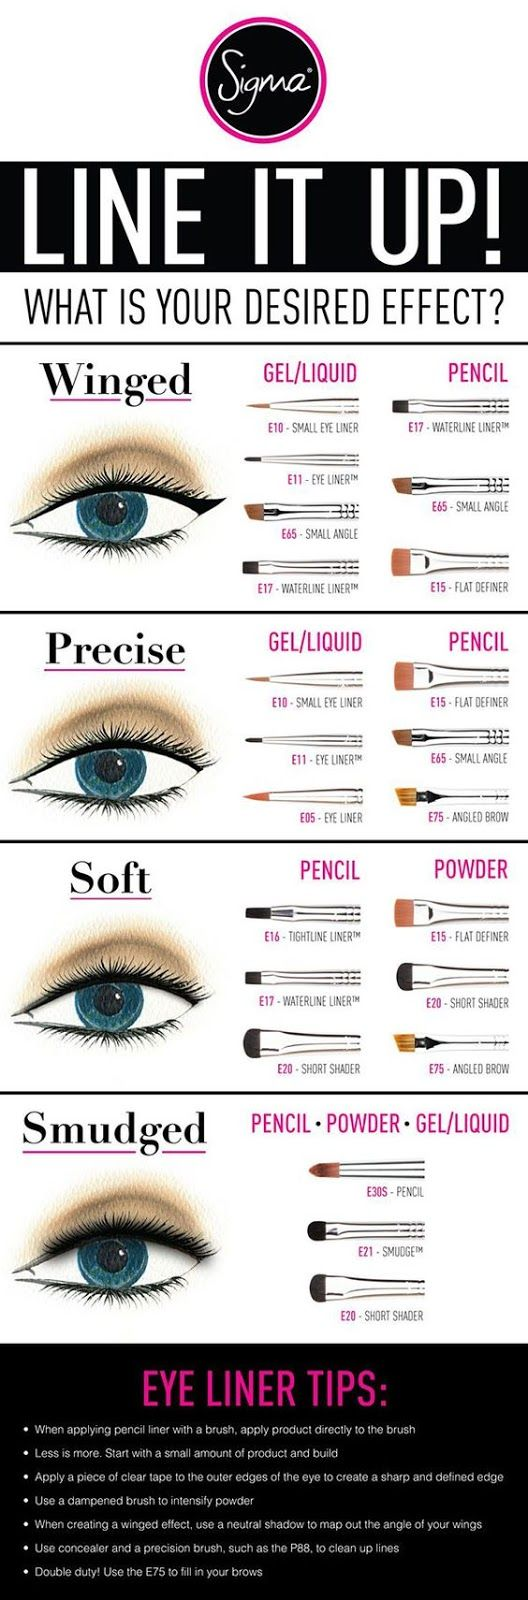 "Makeup Tutorial: How to Apply Eyeliner ‖ Ah, I still remember when I was a naive young girl who believed that makeup brushes didn't matter. I used the cheap black spongey eye-shadow…‖ Only For TODAY!! Get Free ""Mieoko Kabuki Brush"" ‖"